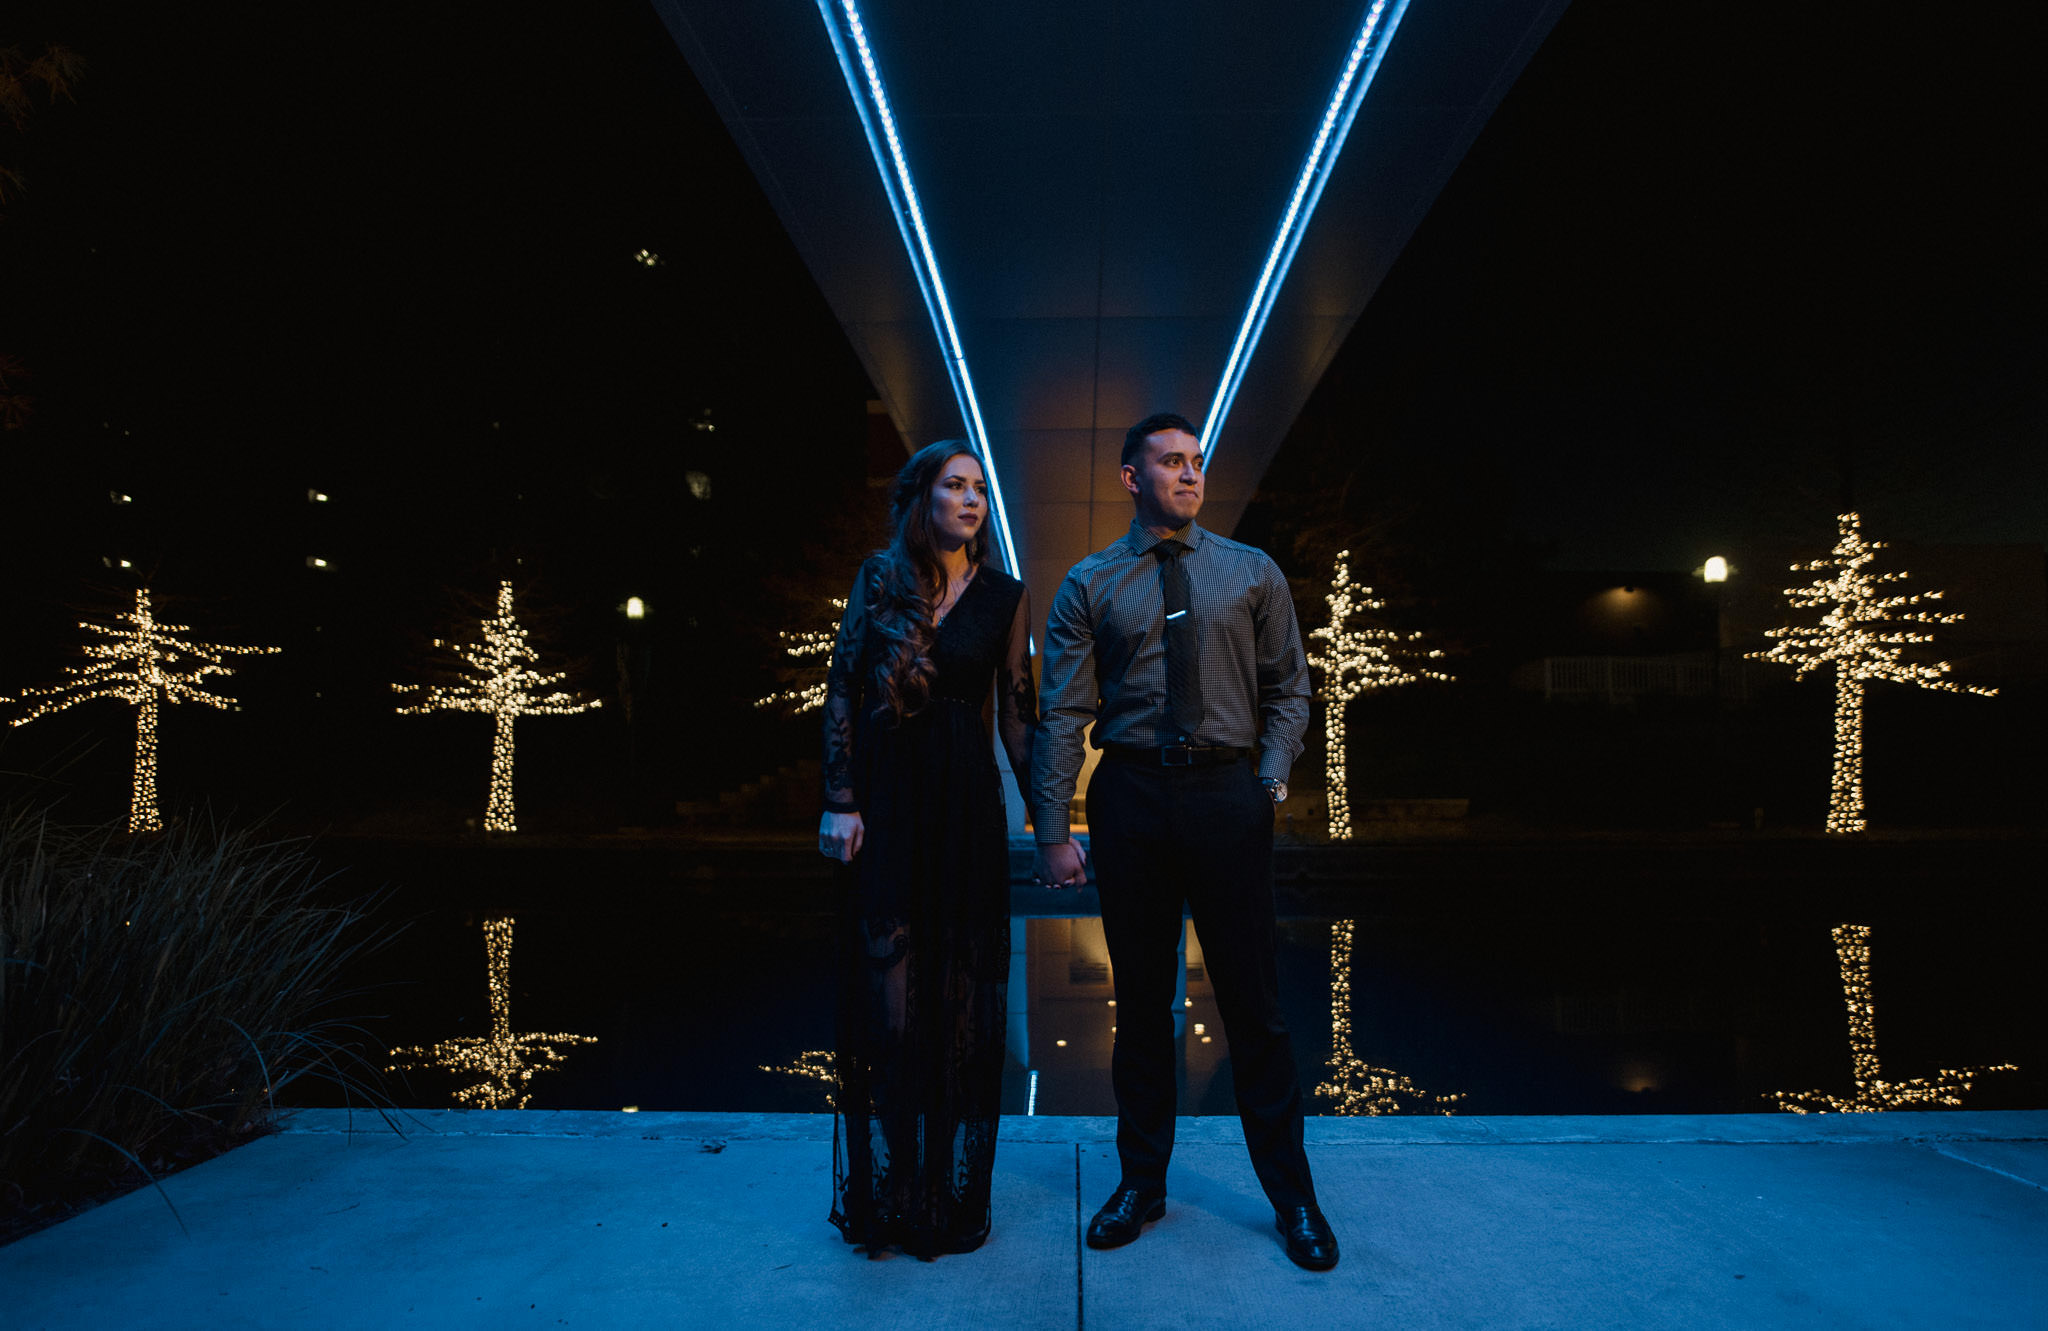 woodlands-houston-waterway-night-enchanted-romantic-engagement-photographer